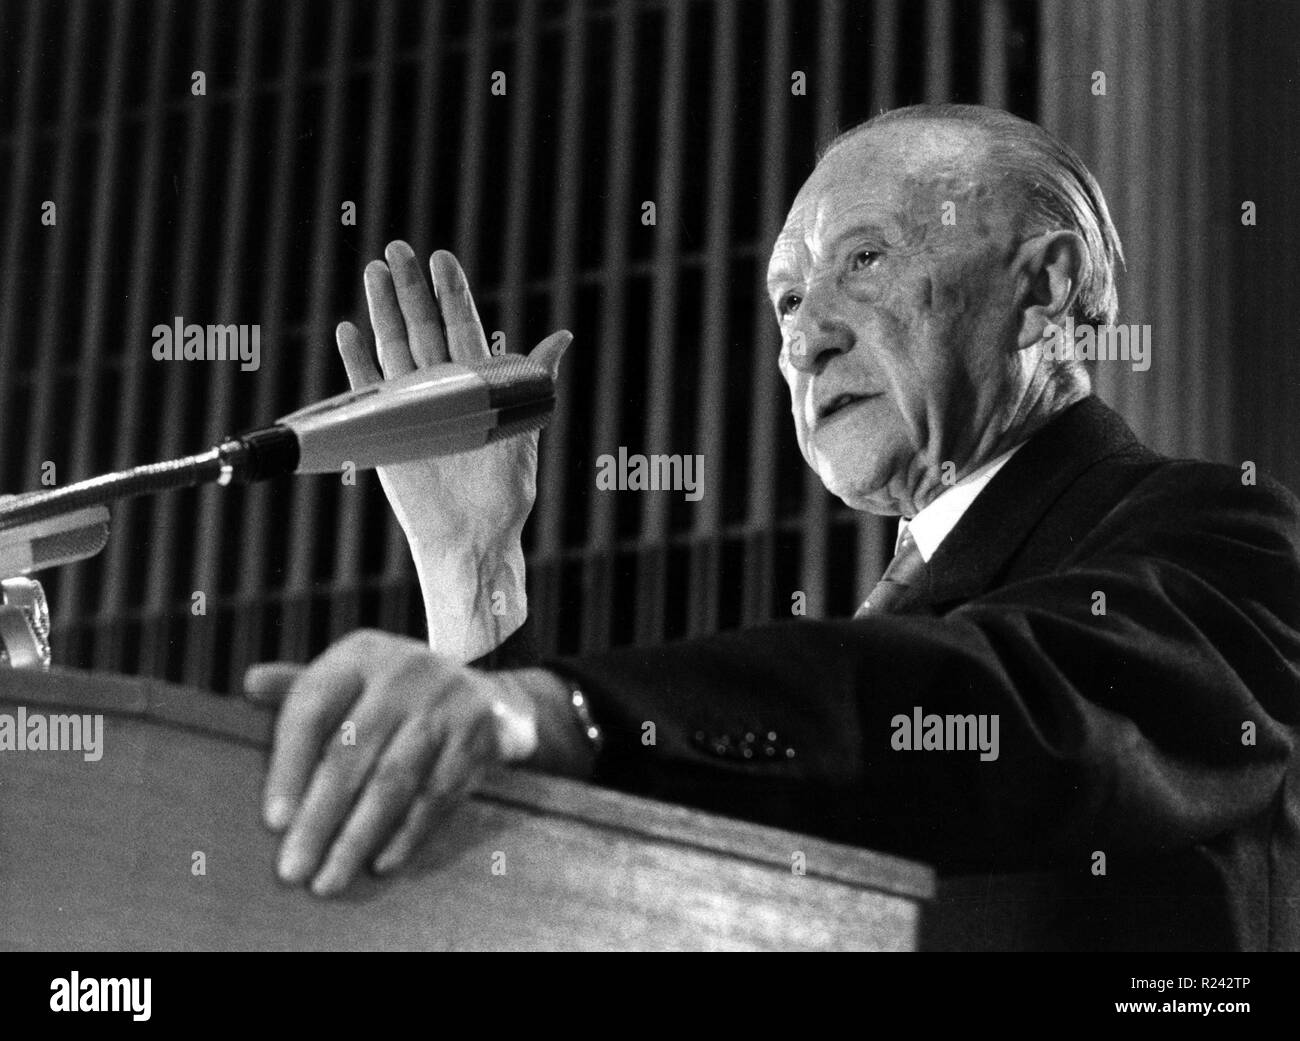 Konrad Hermann Josef Adenauer was a German statesman. As the first post-war Chancellor of Germany from 1949 to 1963, he led his country from the ruins of World War II - Stock Image